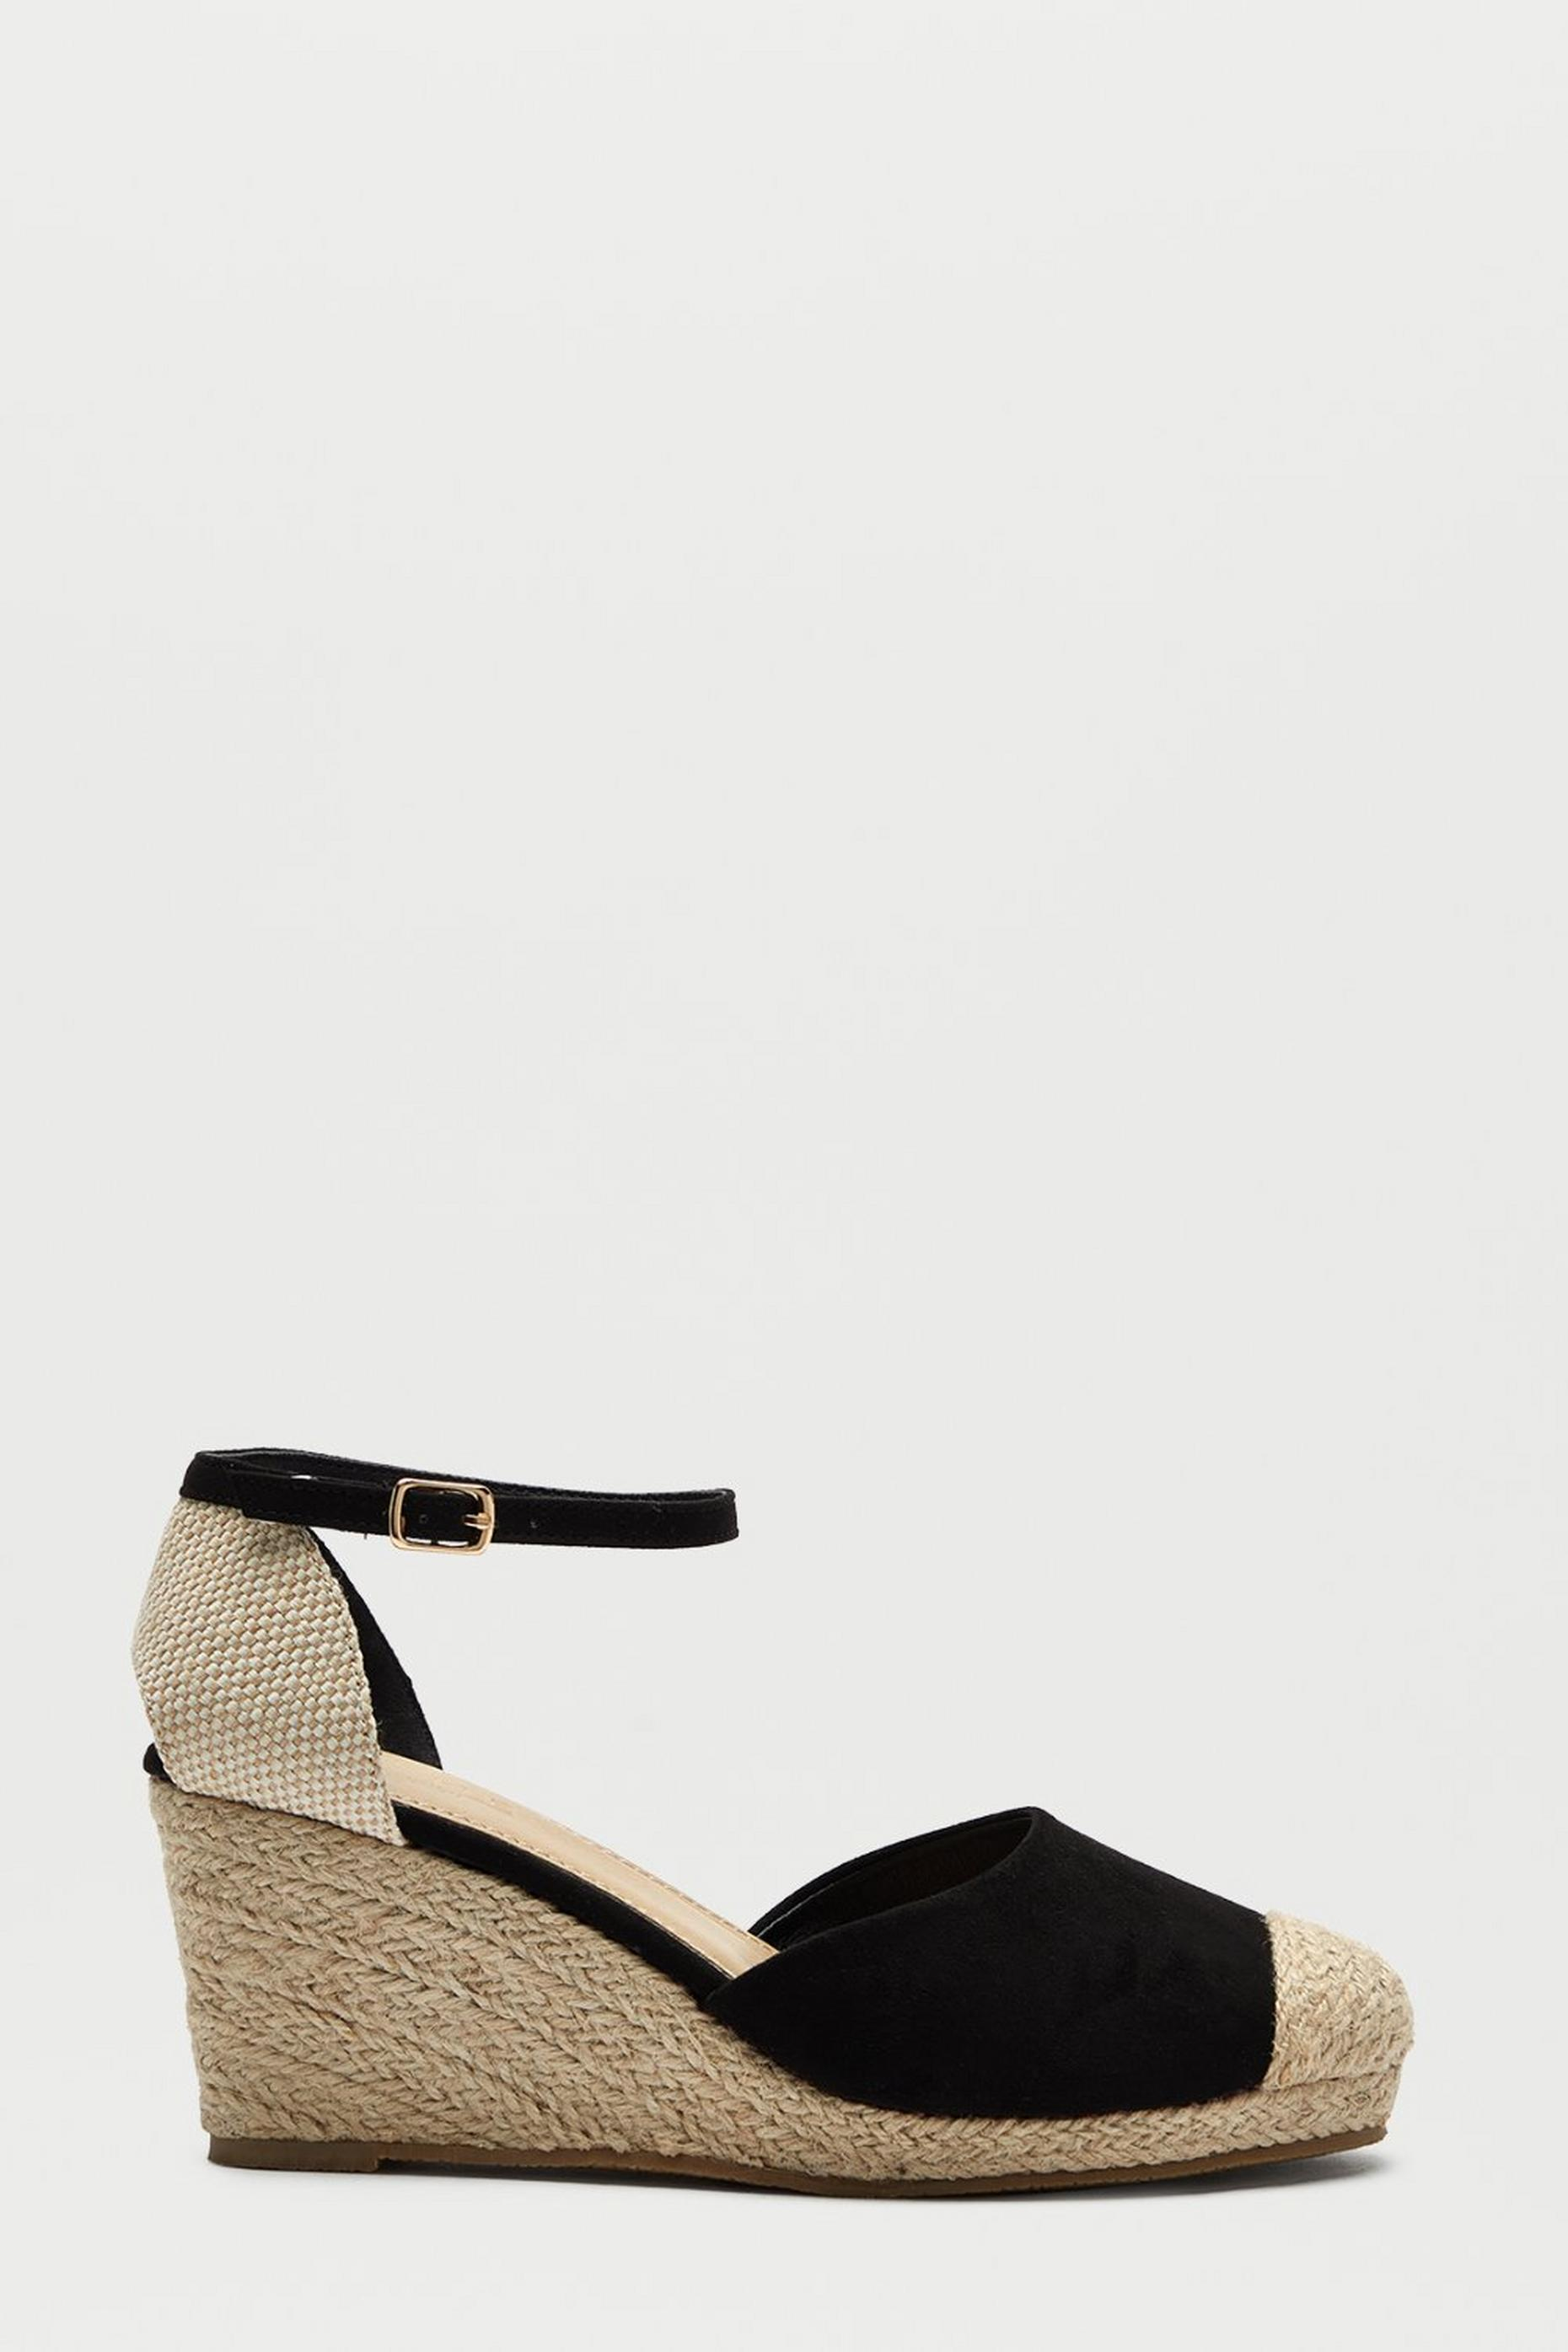 Black Rowan Two Part Espadrille Wedge